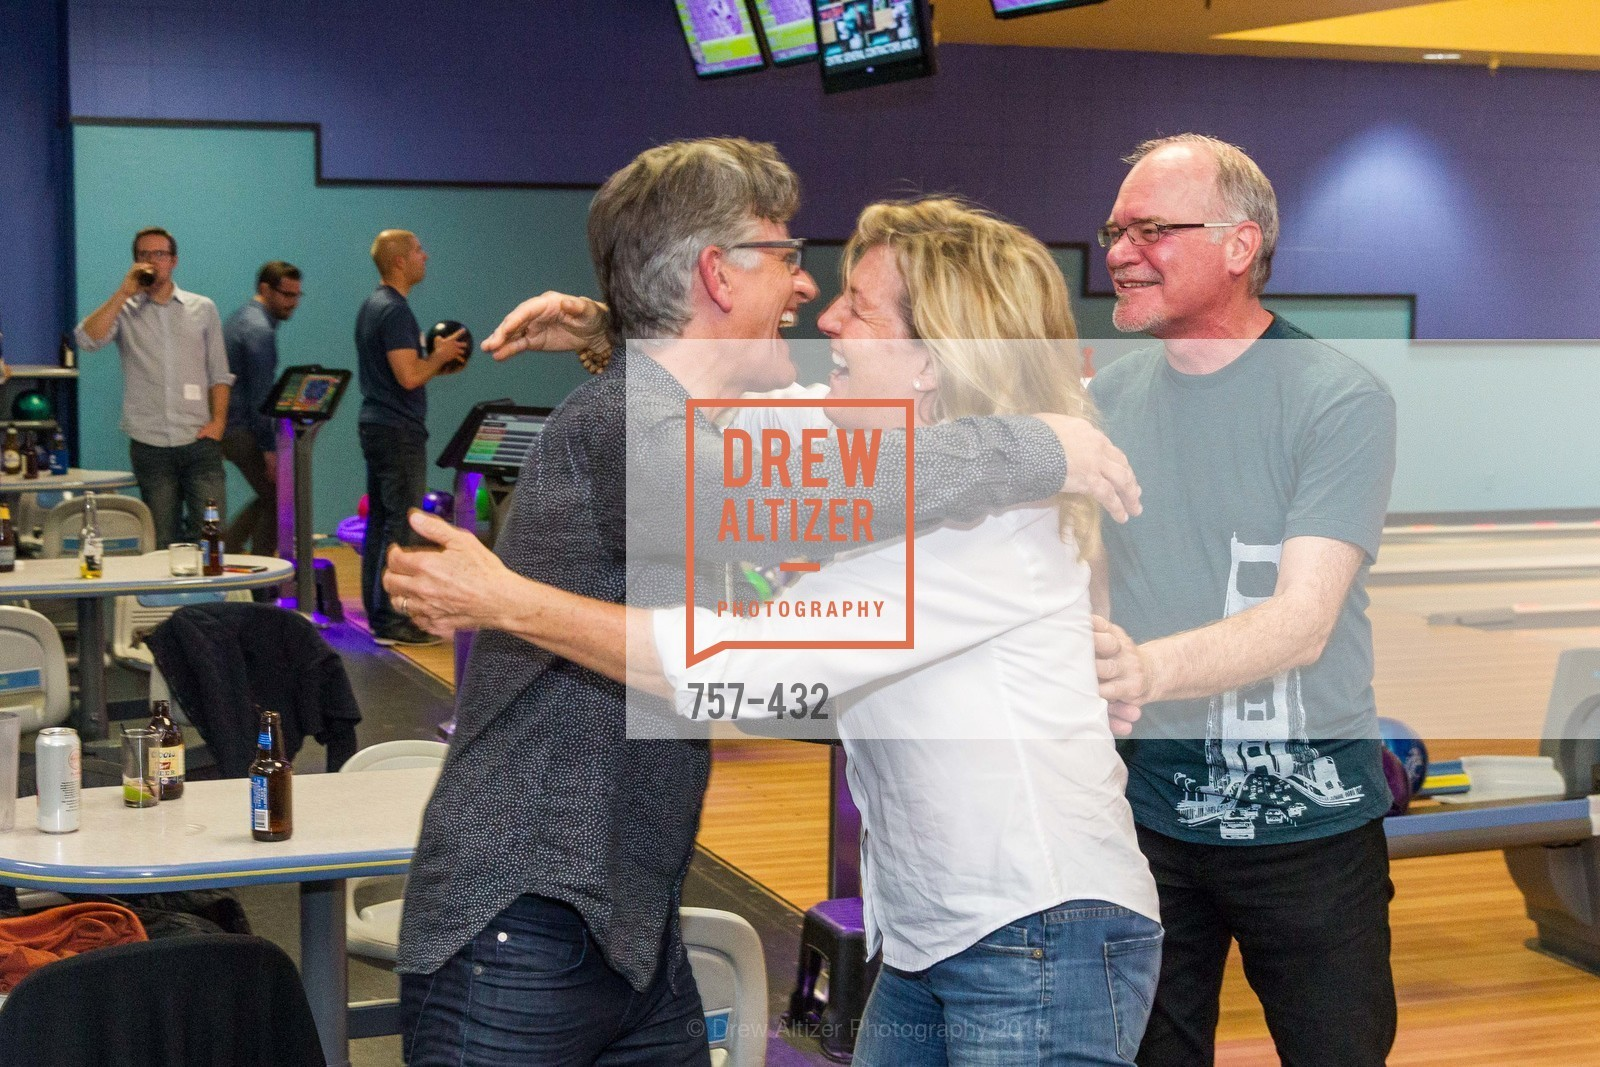 Mark English, Flin McDonald, Terry Bryant, ScavulloDesign Centric Builders Bowling Party, Presidio Bowl. 93 Moraga Ave, October 29th, 2015,Drew Altizer, Drew Altizer Photography, full-service agency, private events, San Francisco photographer, photographer california